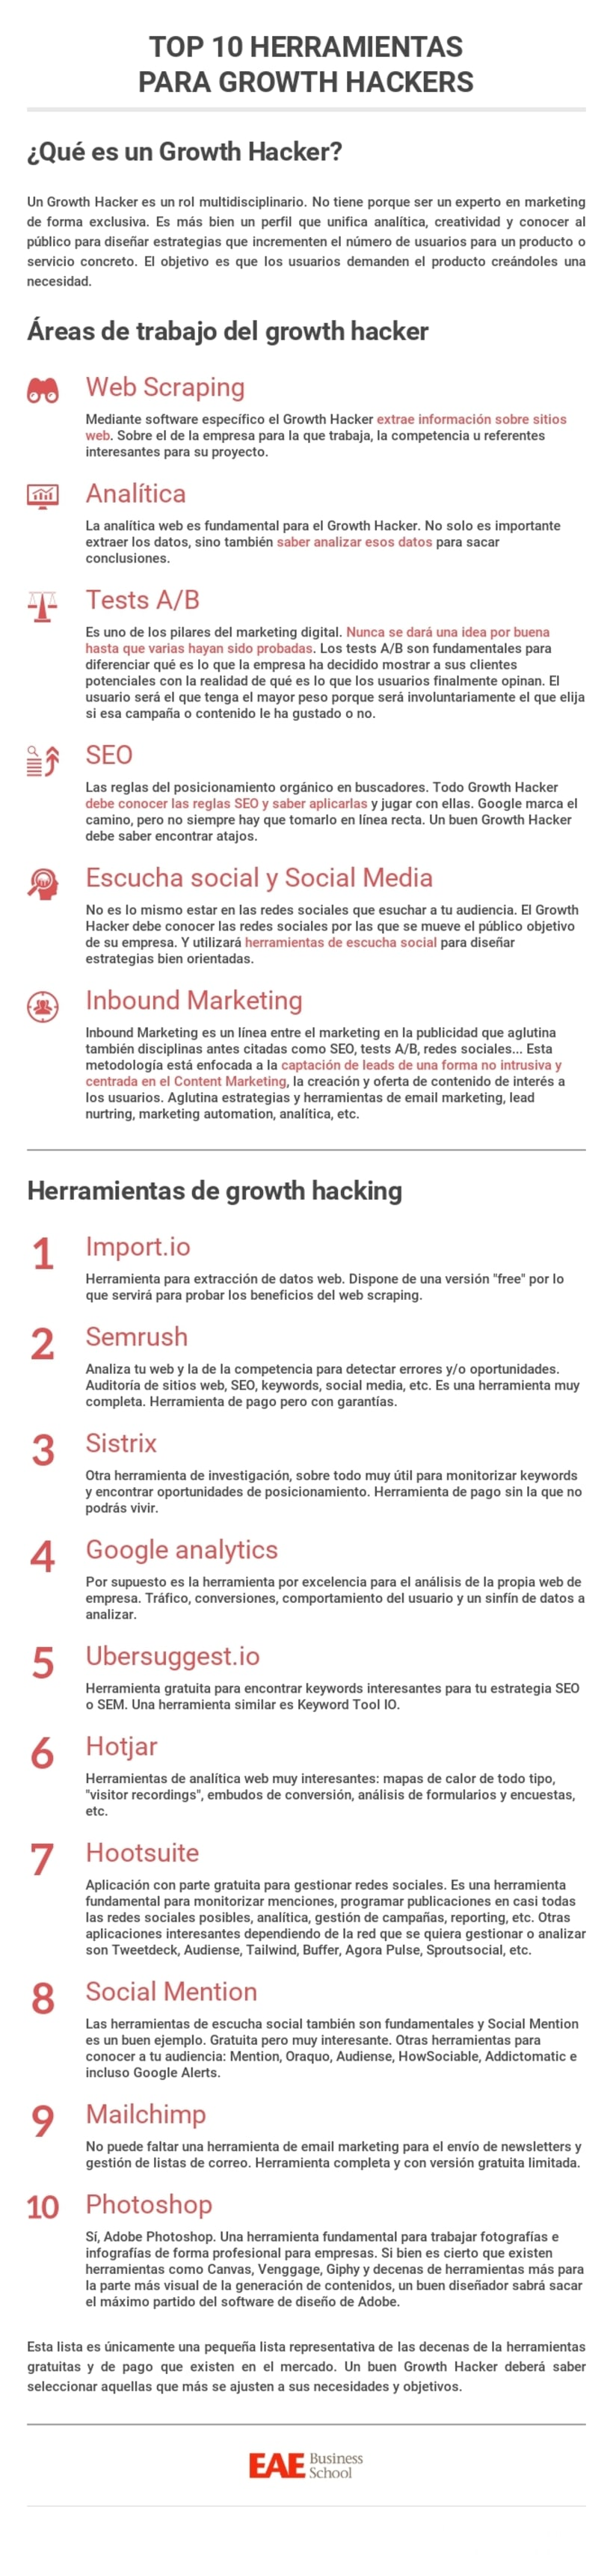 Top 10 herramientas para Growth Hackers -1